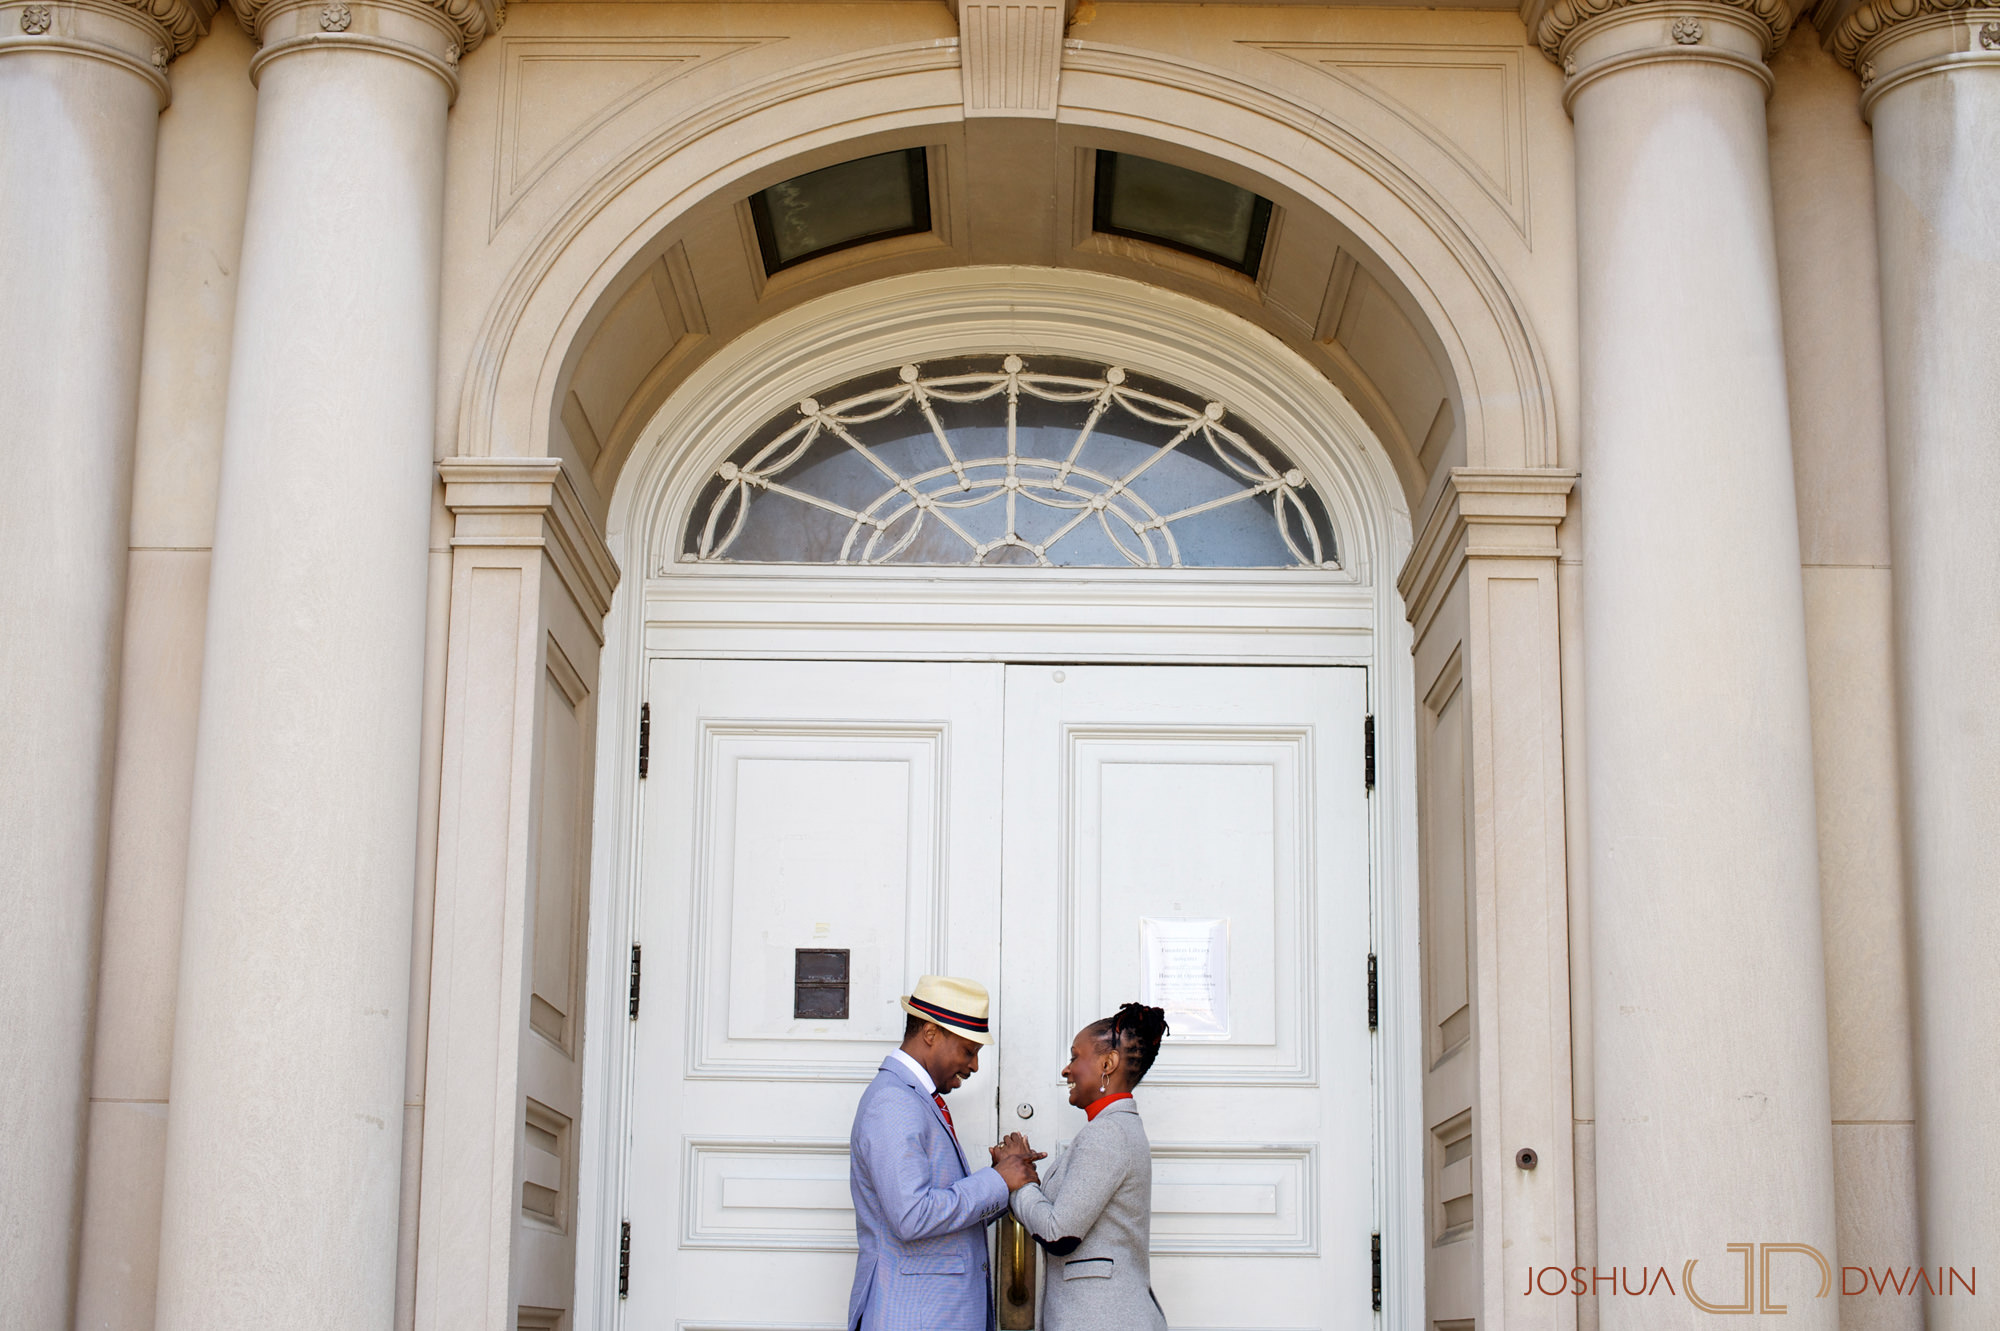 tauheedah-demond-004-howard-university-campuswashington-dc-wedding-photographer-joshua-dwain-2013-03-23_td_027